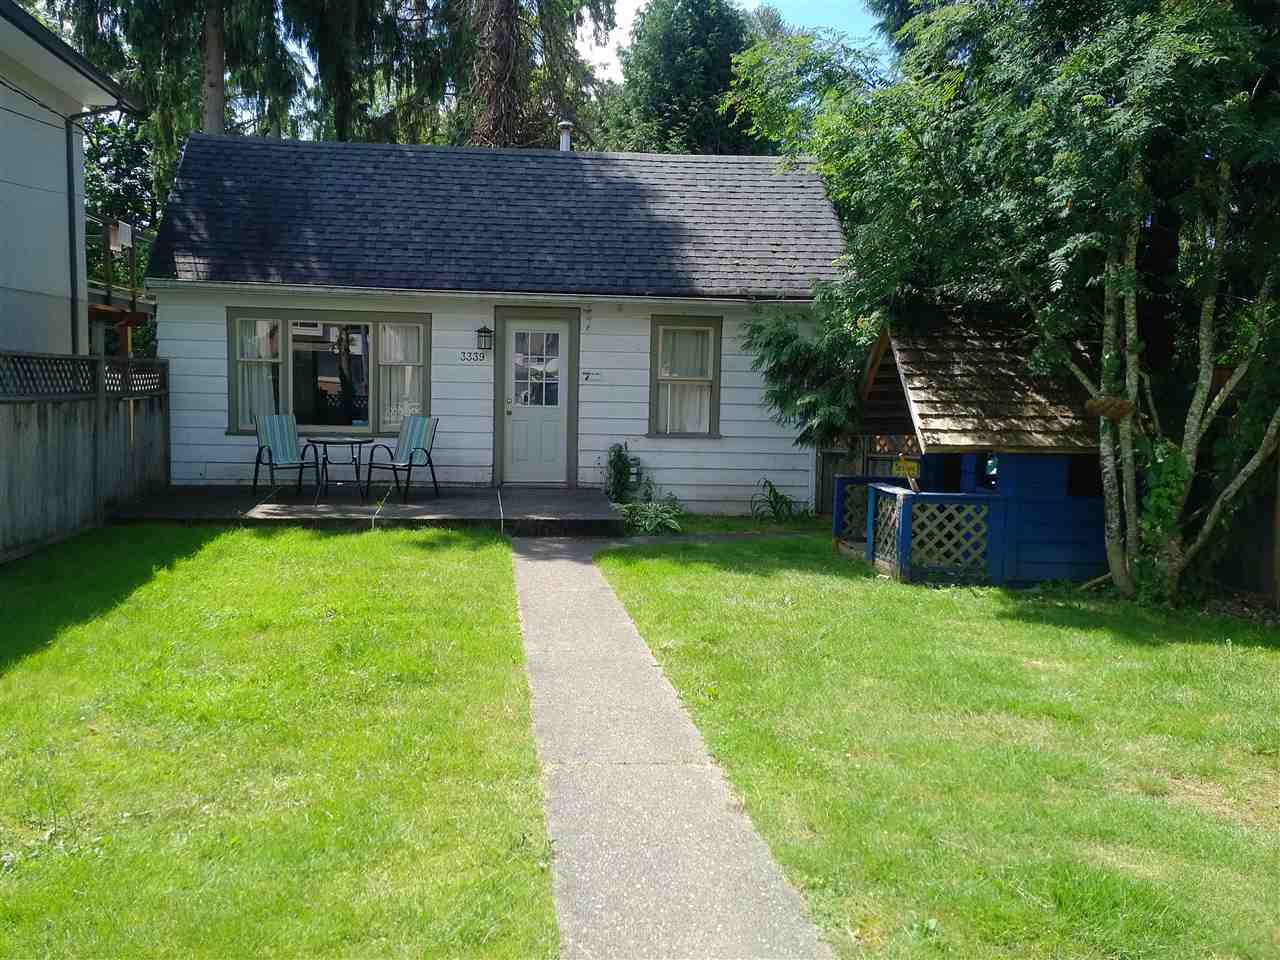 Detached at 3339 HASTINGS STREET, Port Coquitlam, British Columbia. Image 1